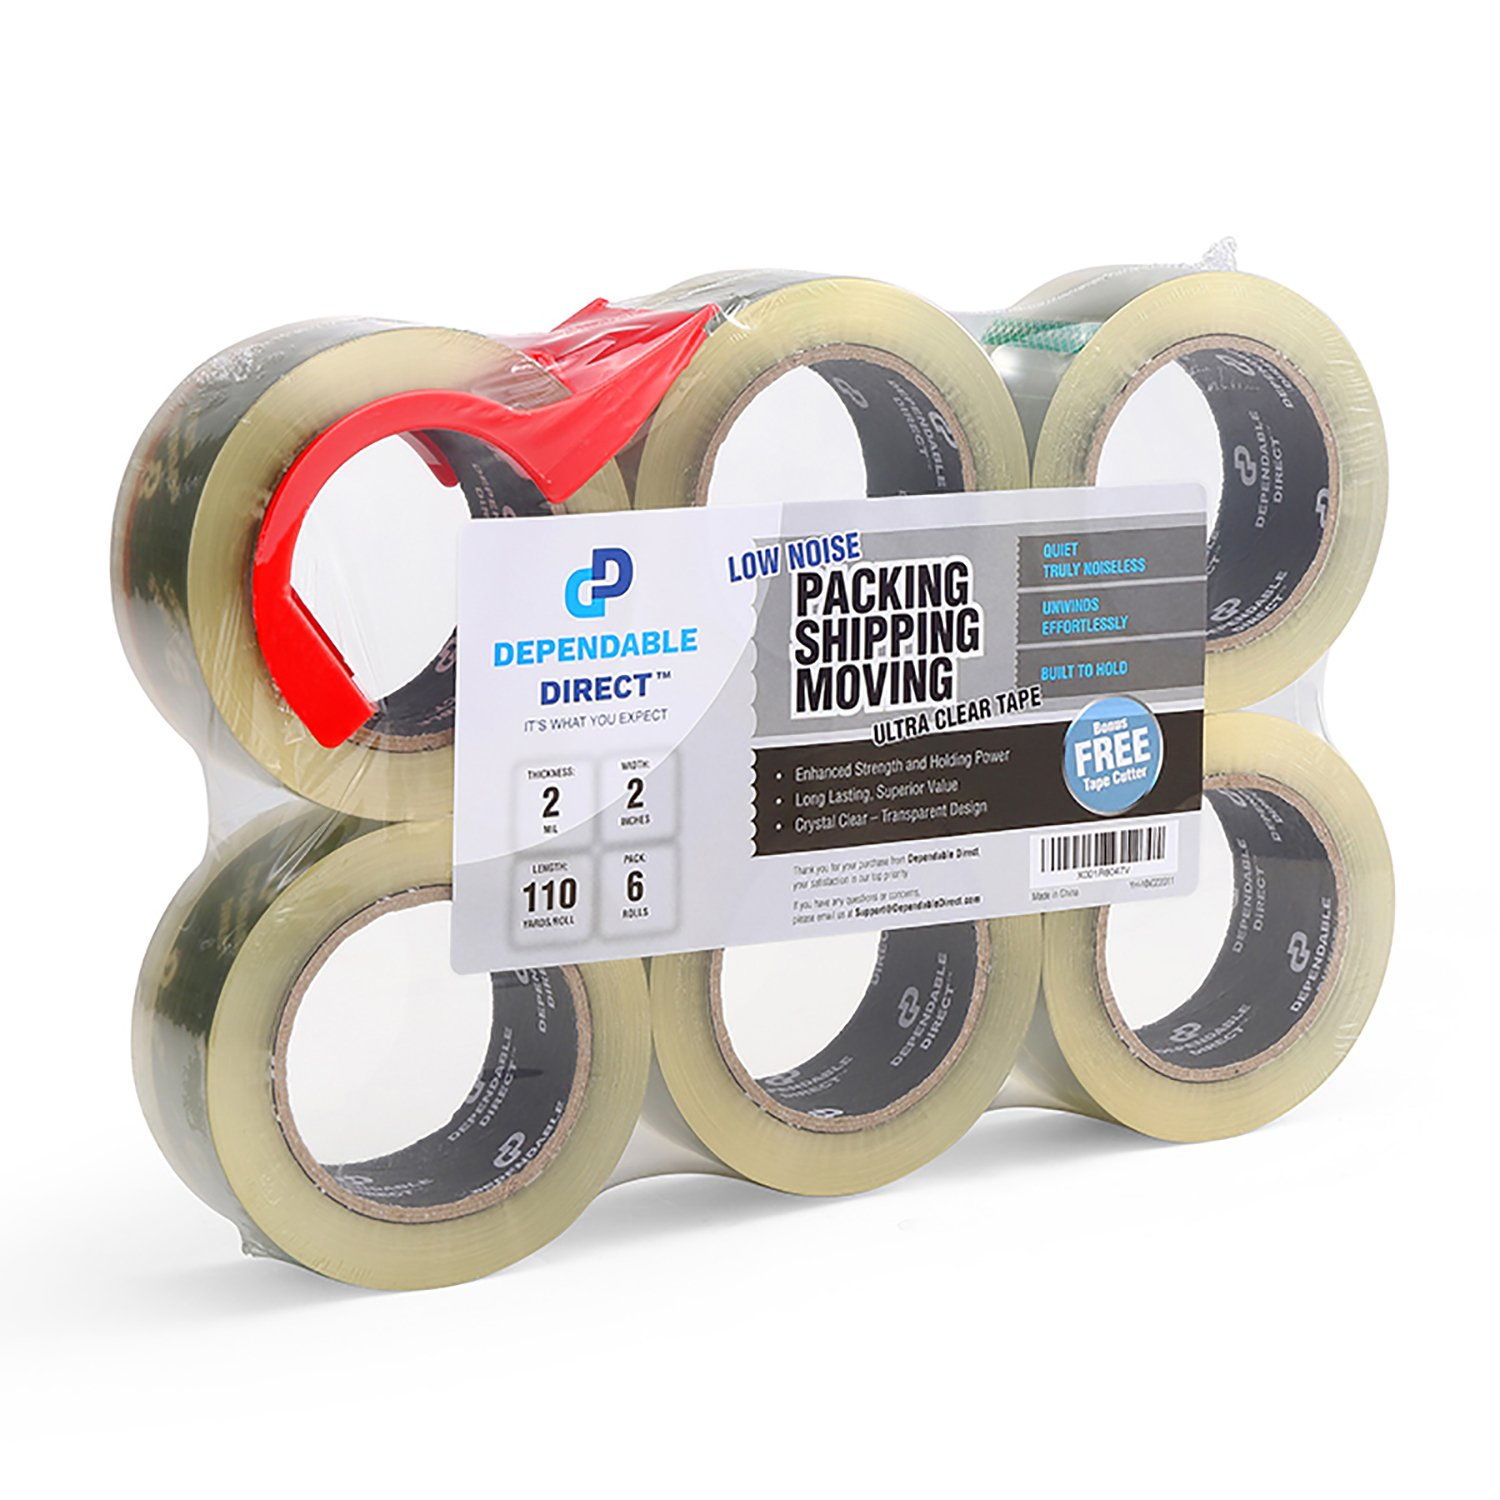 Ultra Quiet, Industrial Grade Clear Packing Tape (6 Rolls) - 110 Yards per Roll - 2'' Wide x 2 mil Thick, Acrylic Adhesive Heavy Duty Tape for Box Office Moving Packaging Shipping, Free Tape Cutter by Dependable Direct